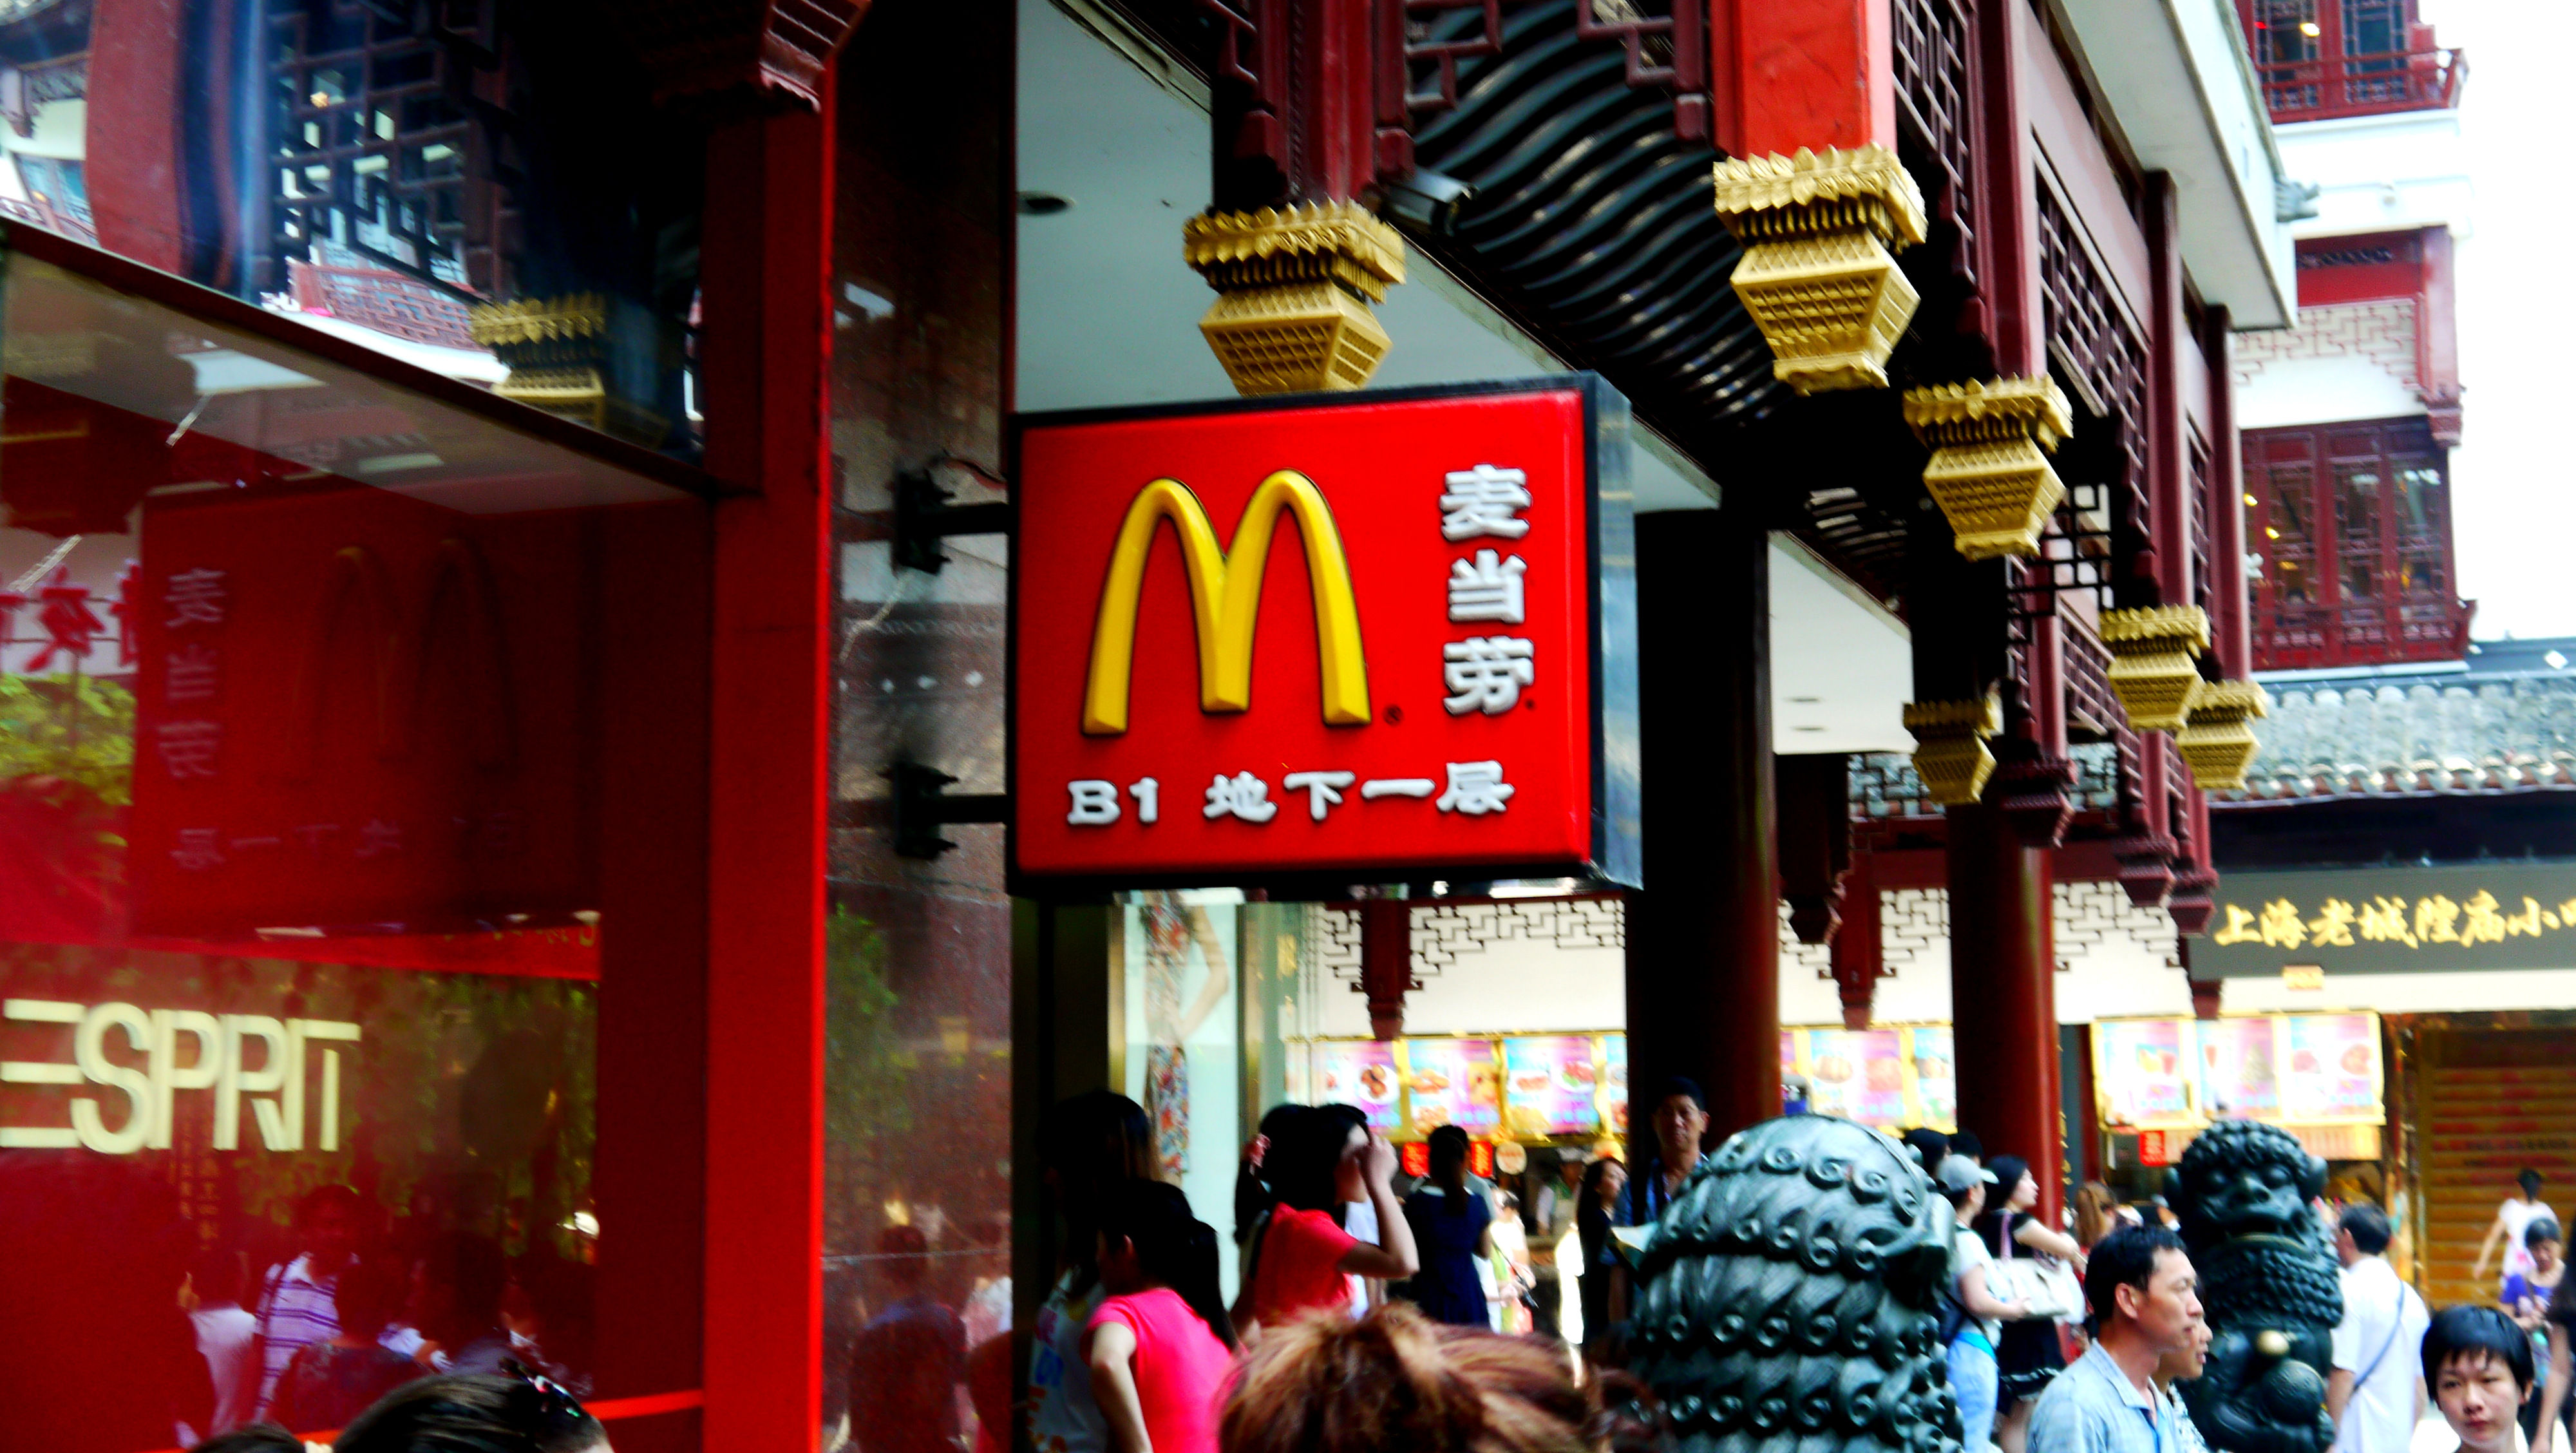 china and mcdonalds and fdi and essay and advertising Ang batas trapiko essay the writers are highly viral and more viralandmorecom/trapiko-essay-writer-683 china and mcdonalds and fdi and essay and advertising essay.